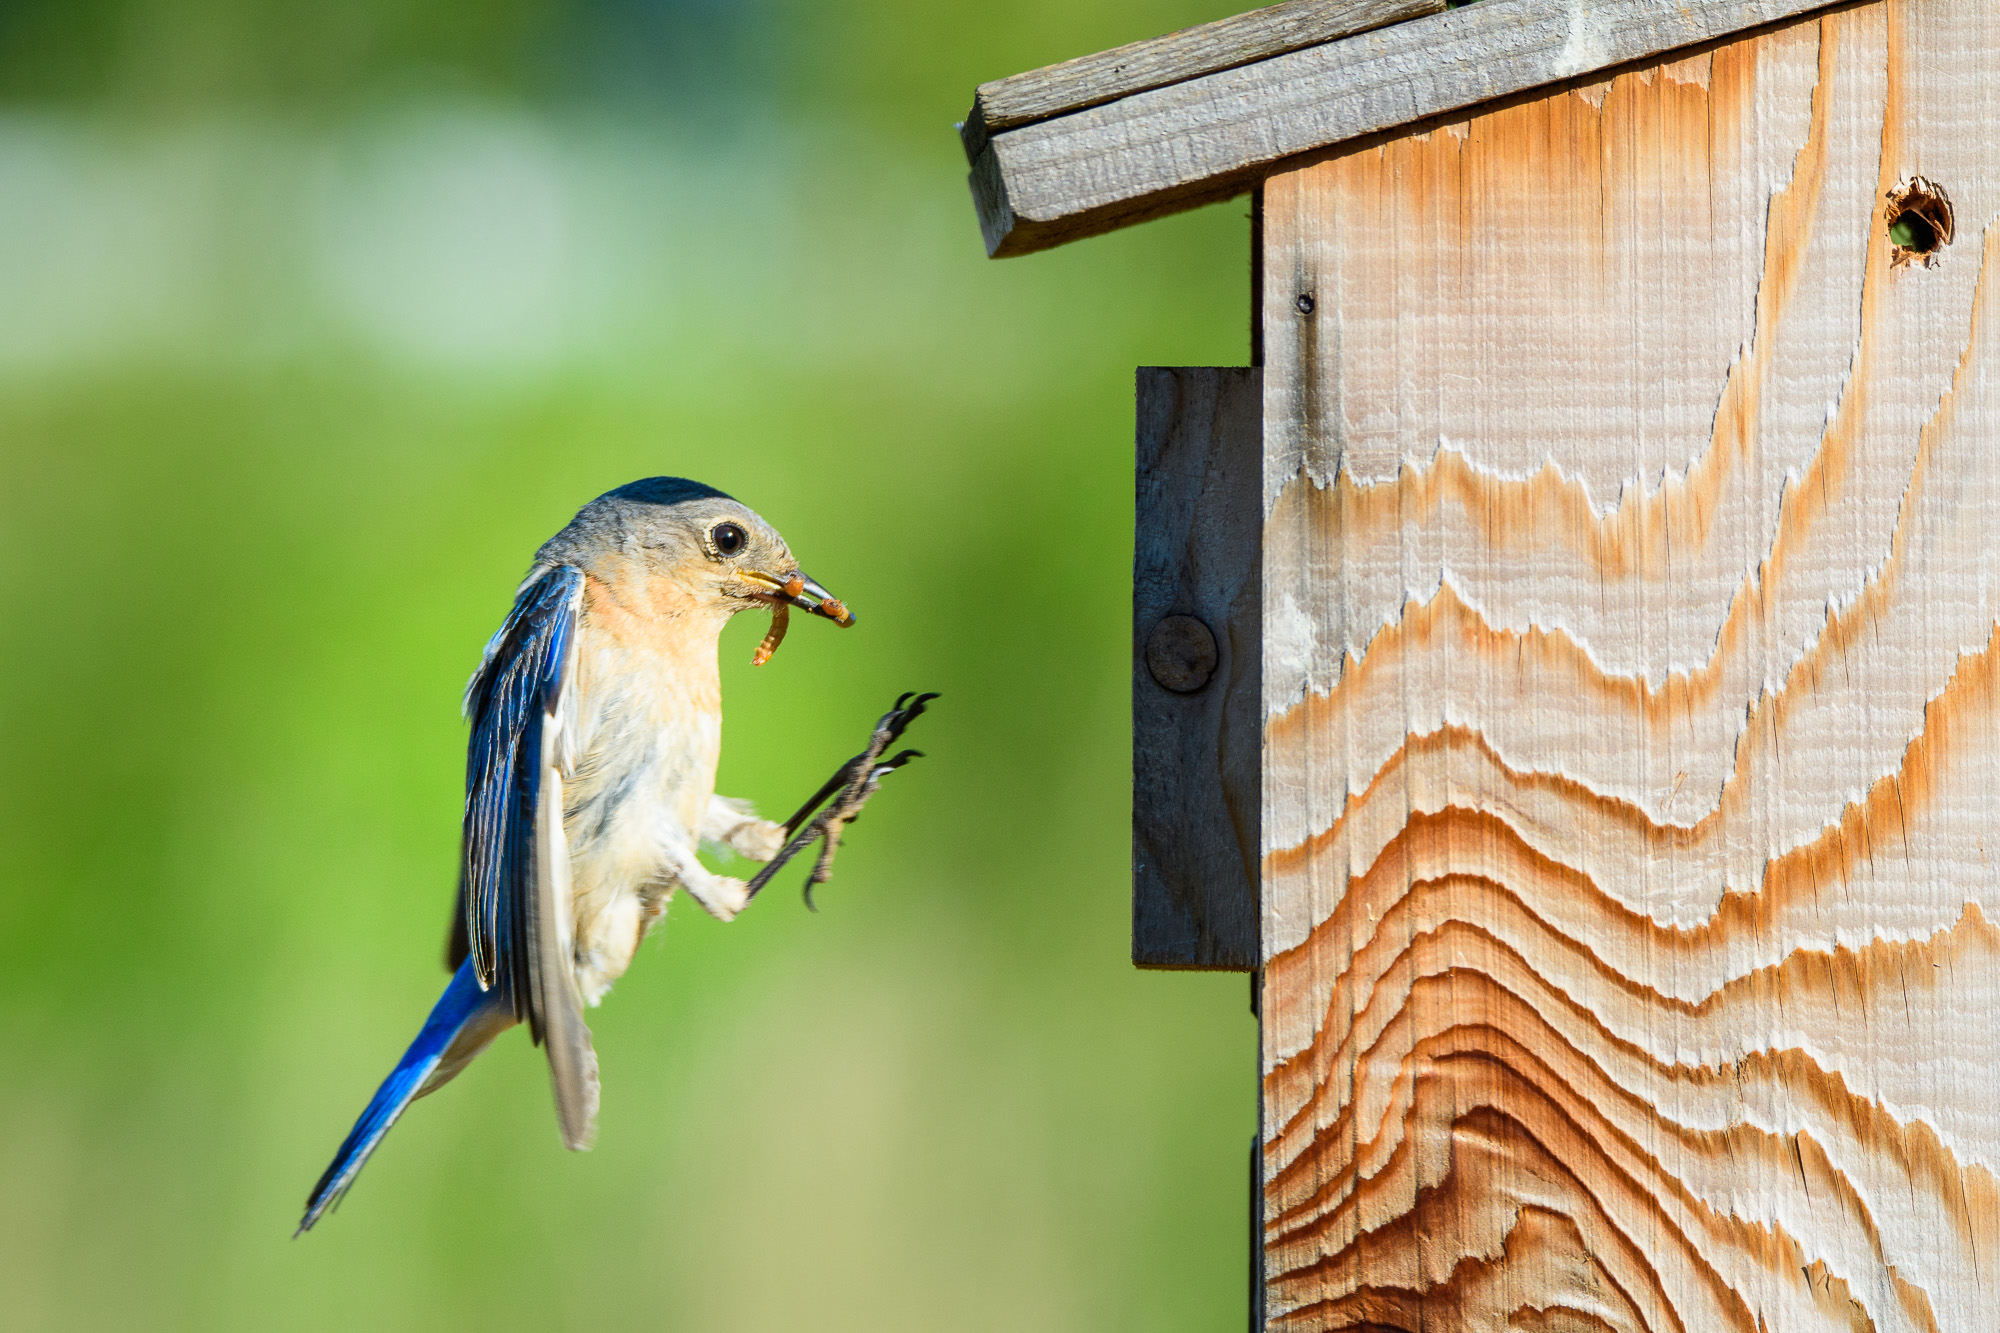 female eastern bluebird bringing food to the nest